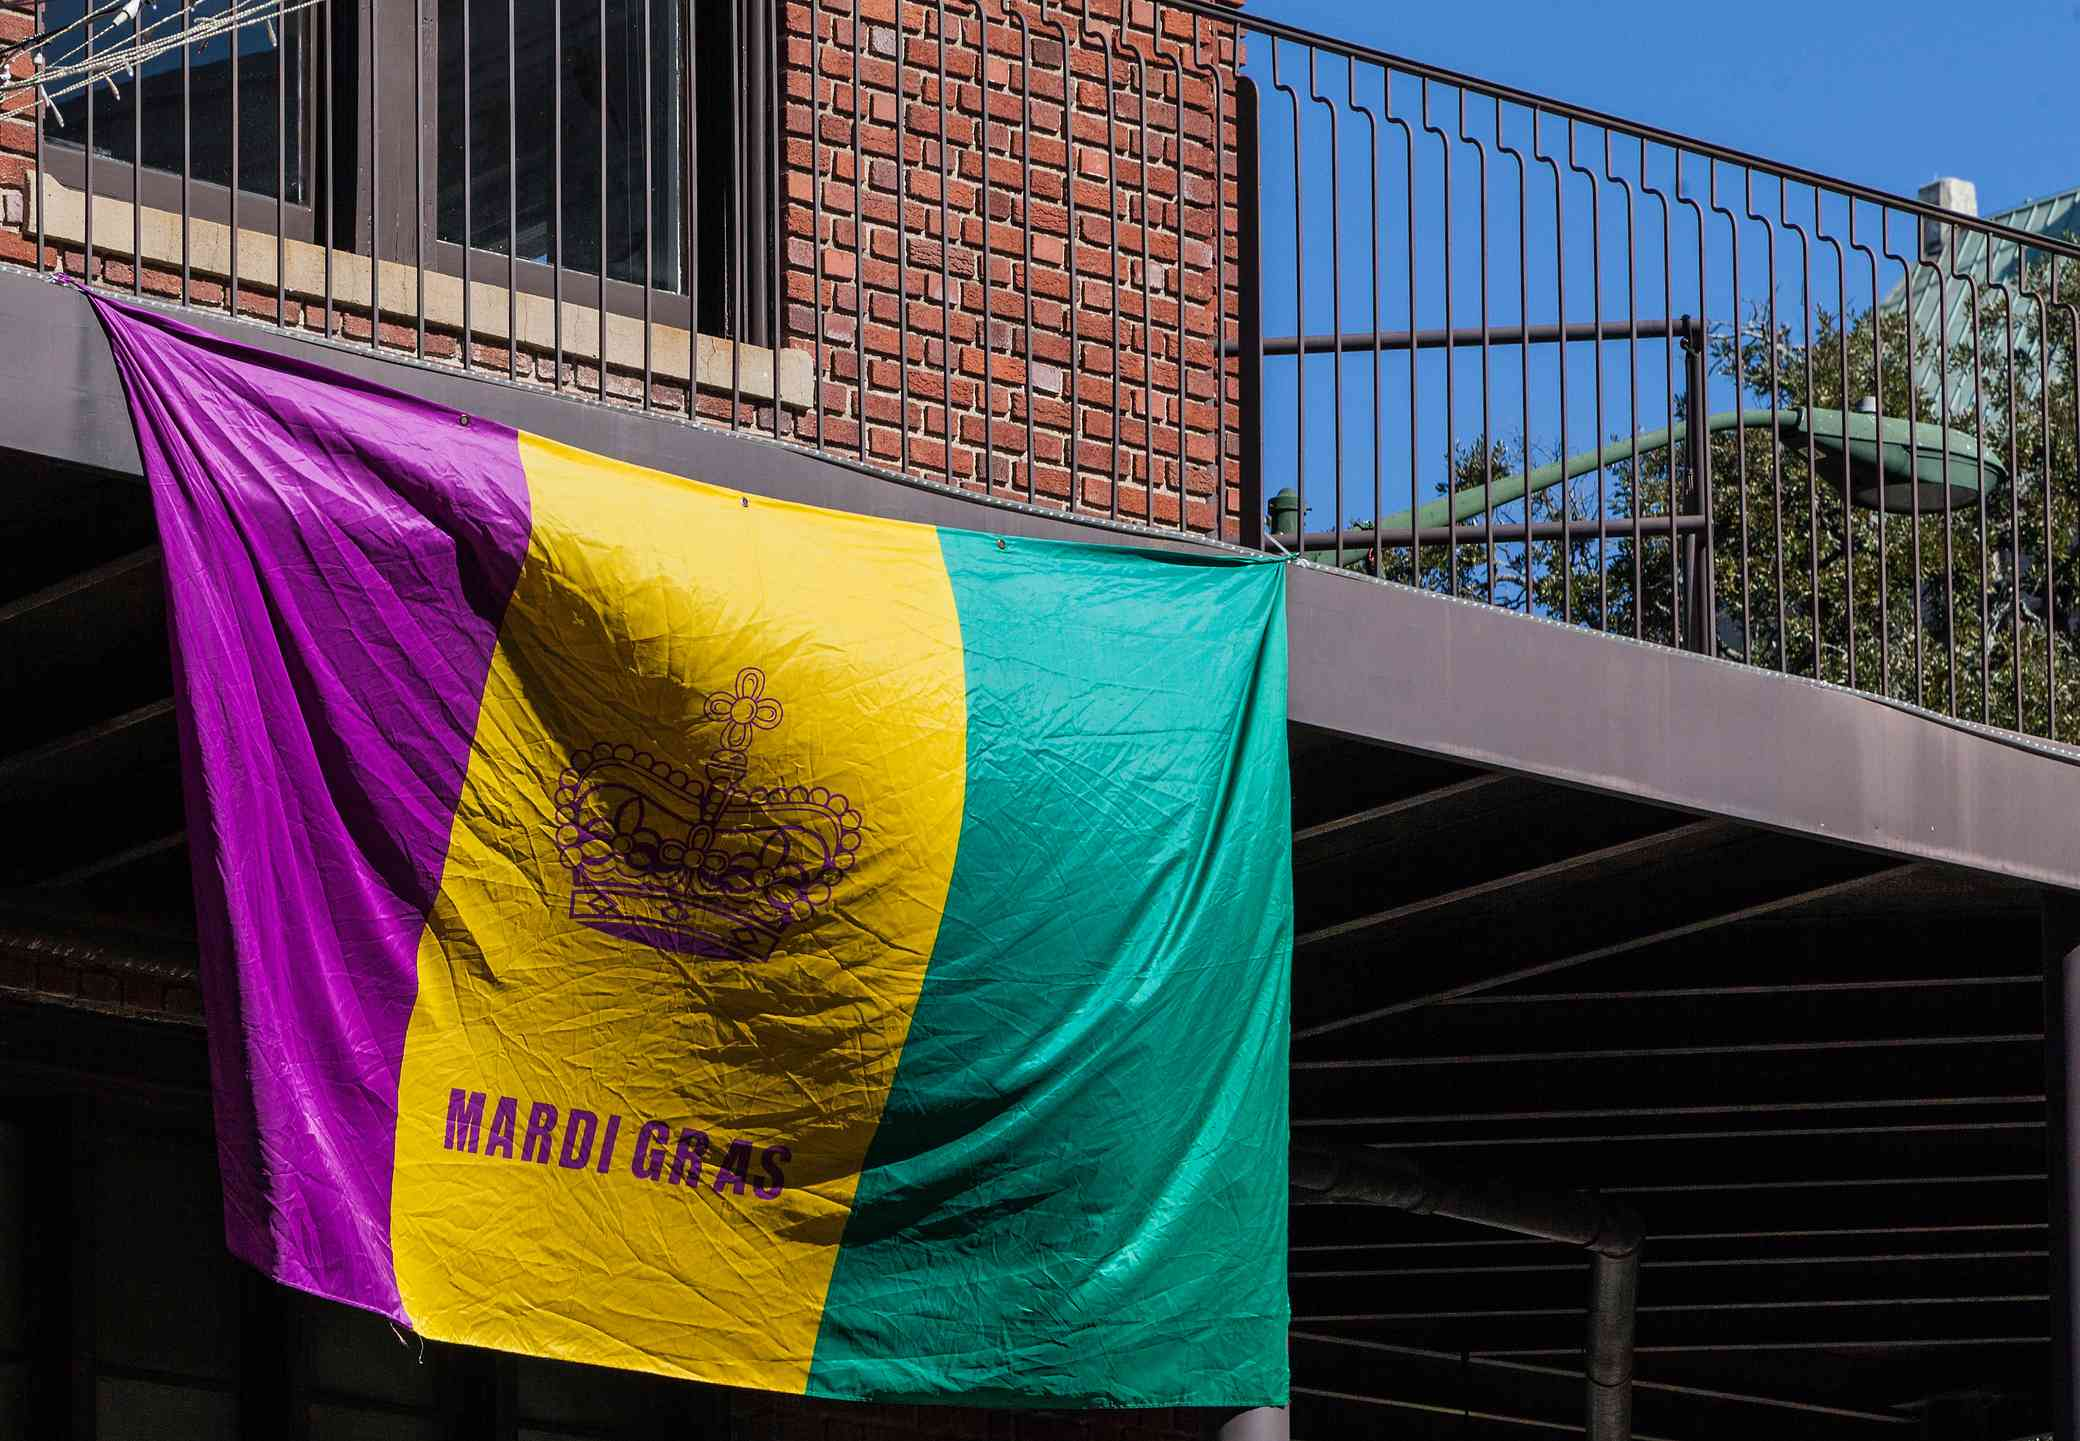 A balcony decorated with the Mardi Gras flag at the parade in Mobile, Alabama